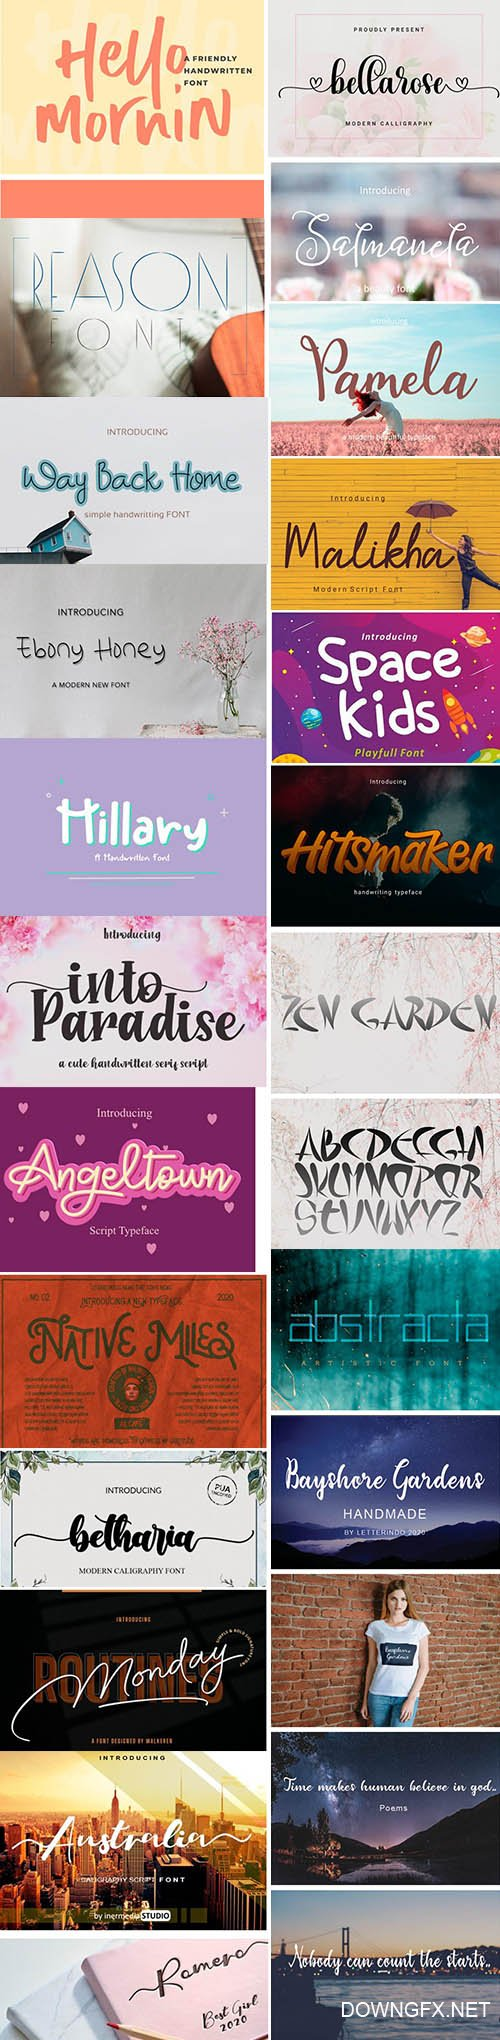 20 Amazing Modern Fonts in 1 Pack!